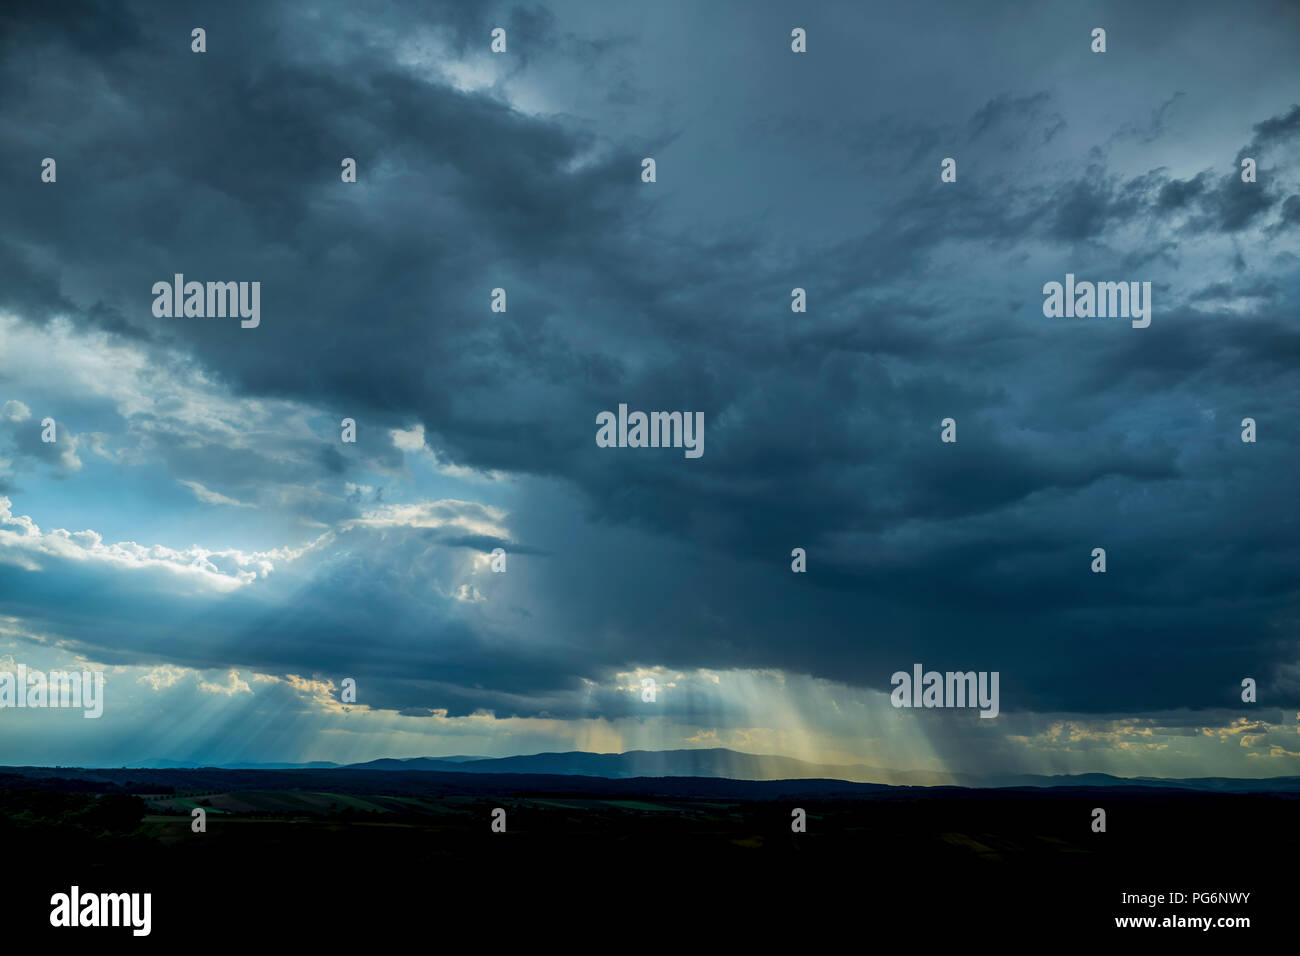 Germany, dark and dramatic cloudy mood during thunderstorm Stock Photo